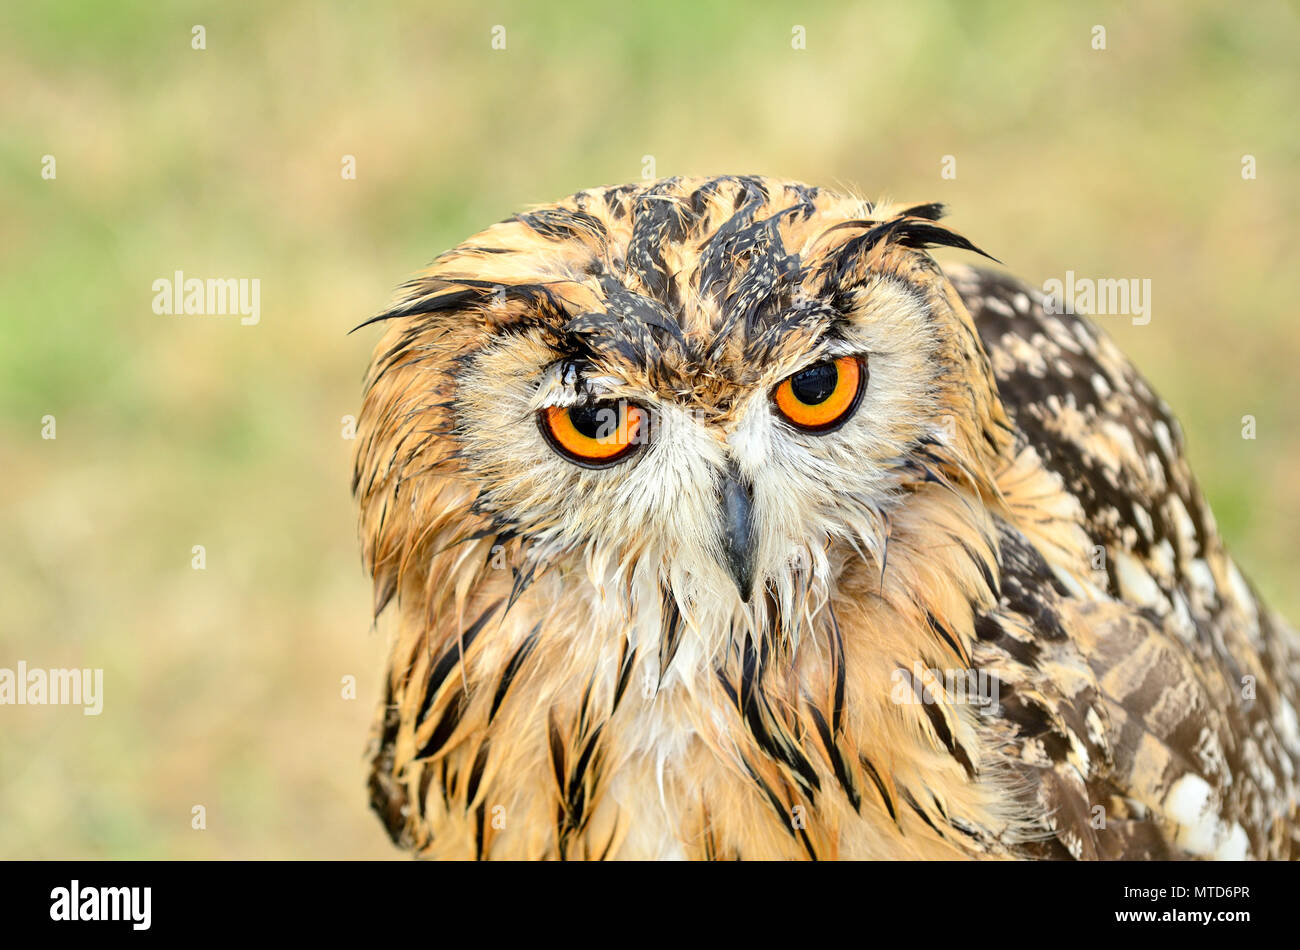 Indian Rock Owl / Indian Eagle-Owl / Rock Eagle-Owl or Bengal Eagle-Owl (Bubo bengalensis) Indian subcontinent: captive bird, UK - Stock Image